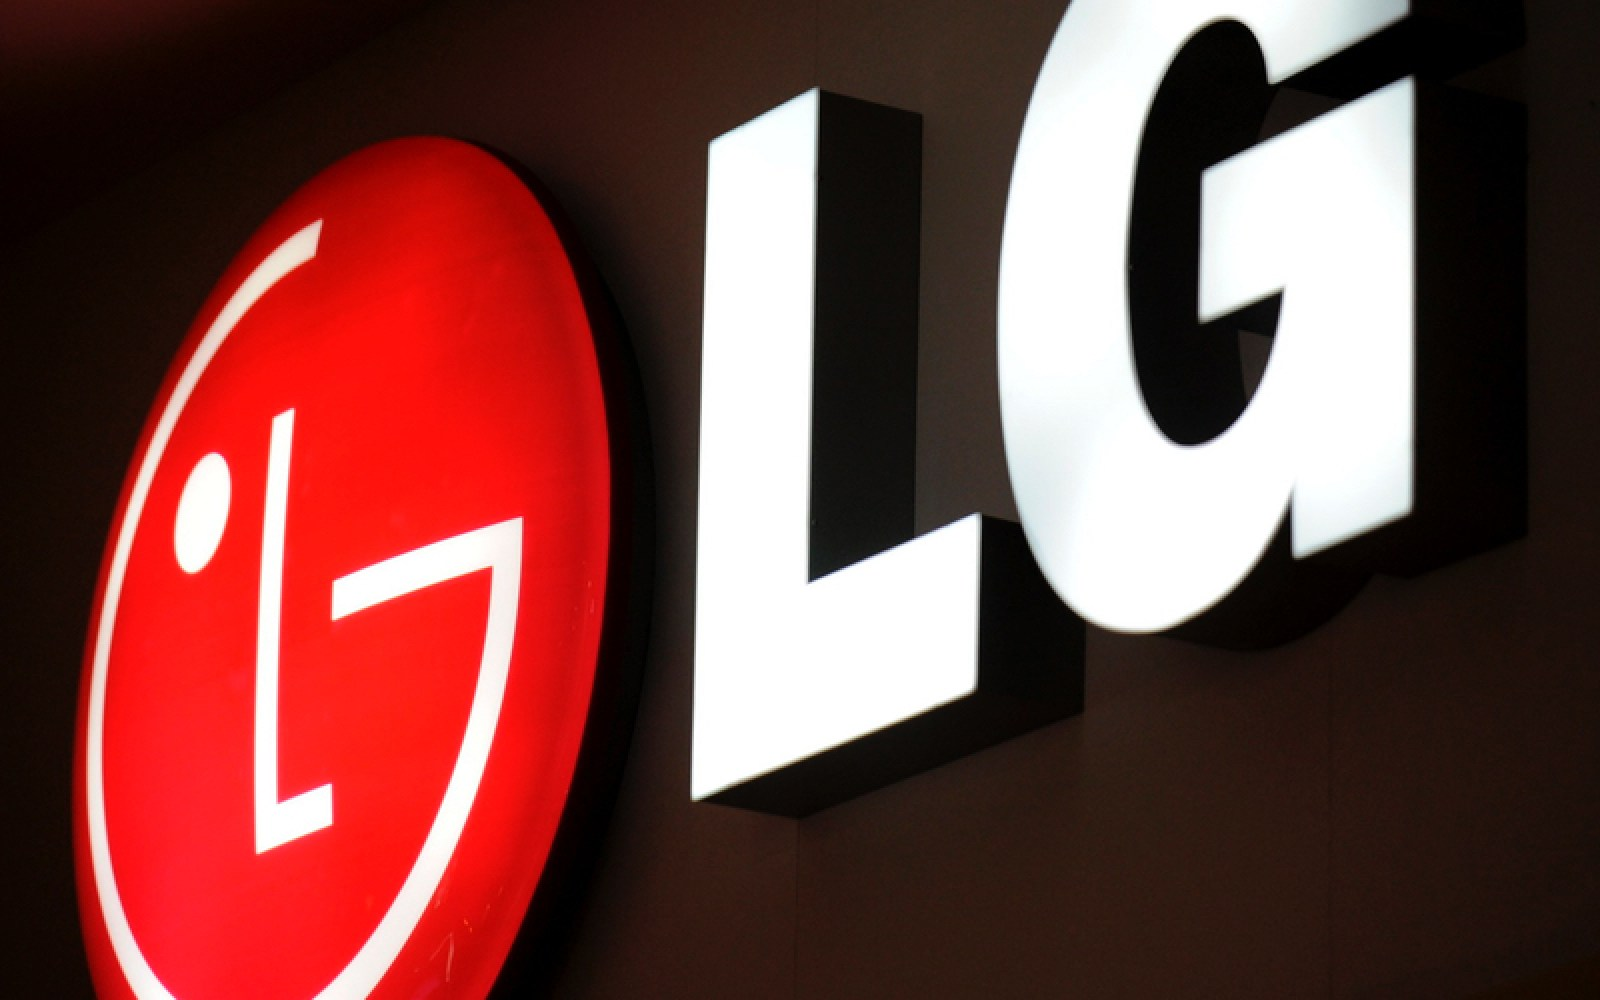 LG plans to launch two flagship phones in 2016 following 4th quarter mobile loss